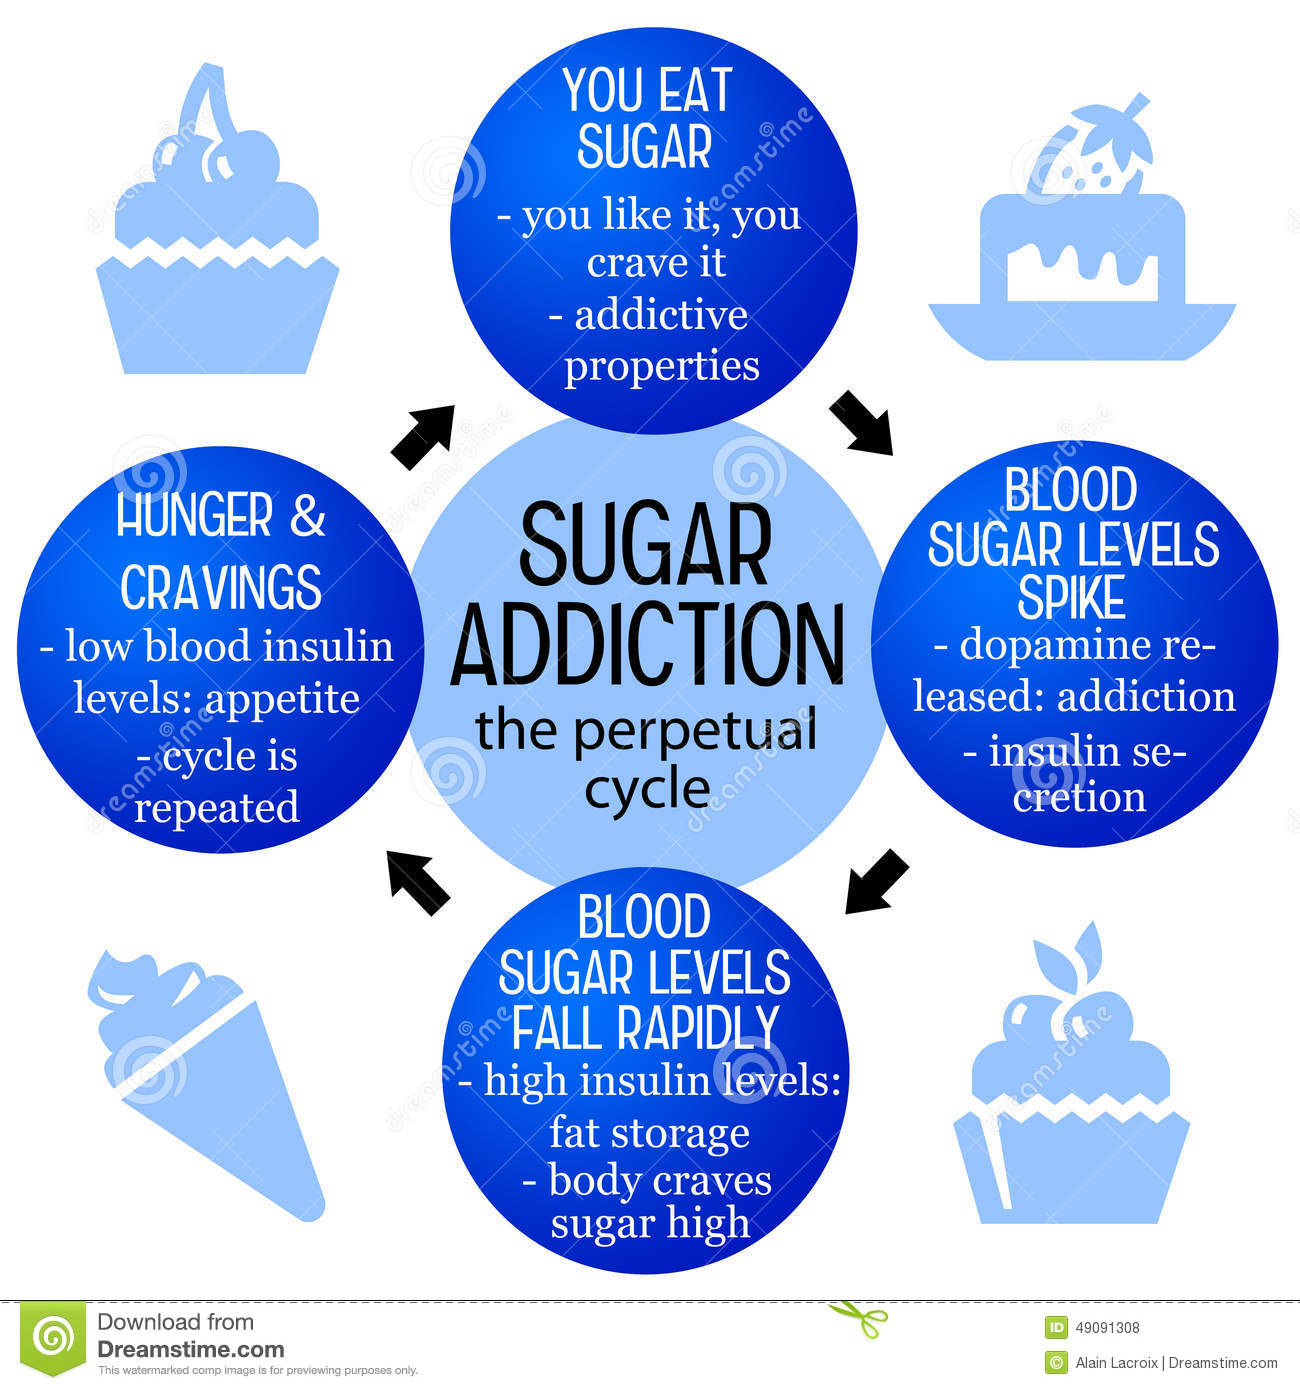 sugar addictio and its effects on Primary exercise addiction occurs as a form of behavioral addiction, but these people do not have any other psychological or behavioral conditions—exercise addiction is the main problem 2 primary exercise addiction is more common in males and usually develops in response to the pleasurable effects of endorphins that are released during and.